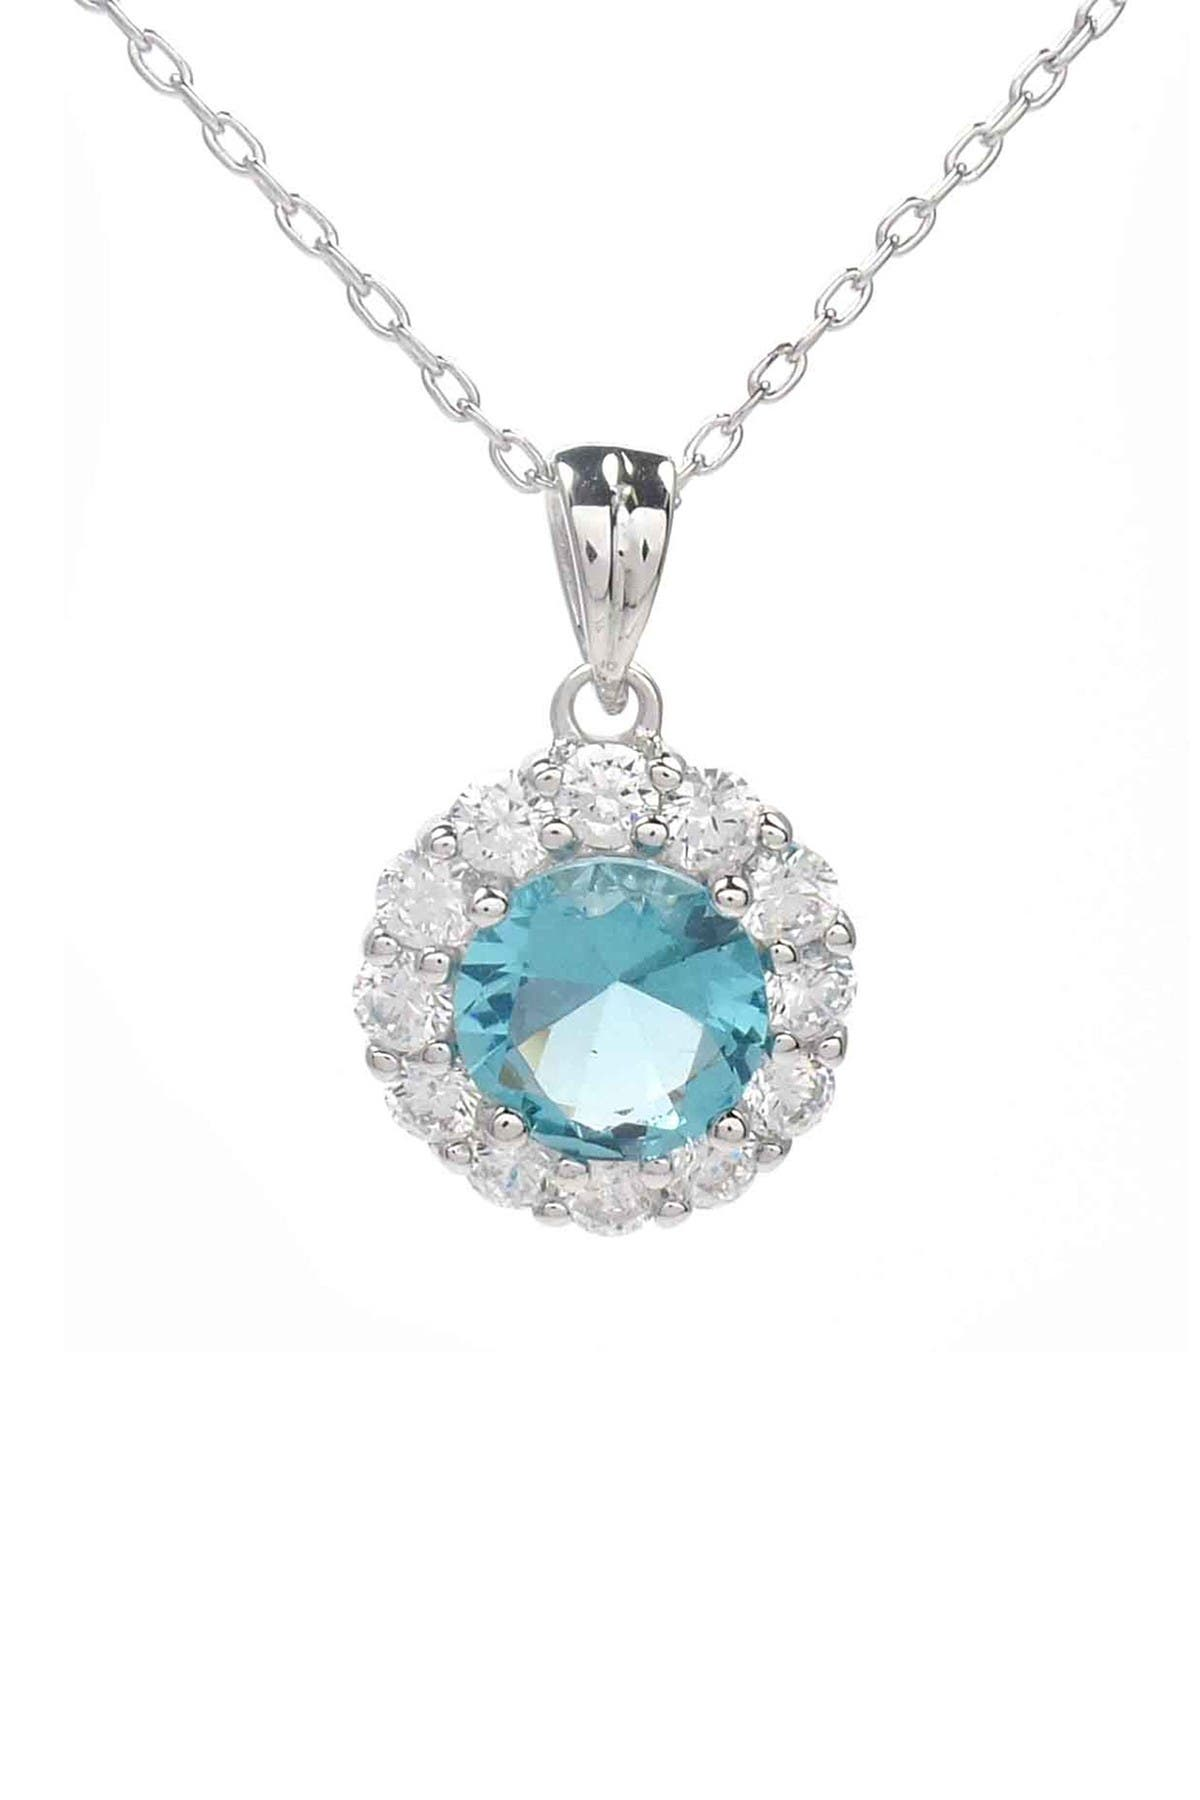 Image of Savvy Cie Rhodium Plated CZ Drop Pendant Necklace